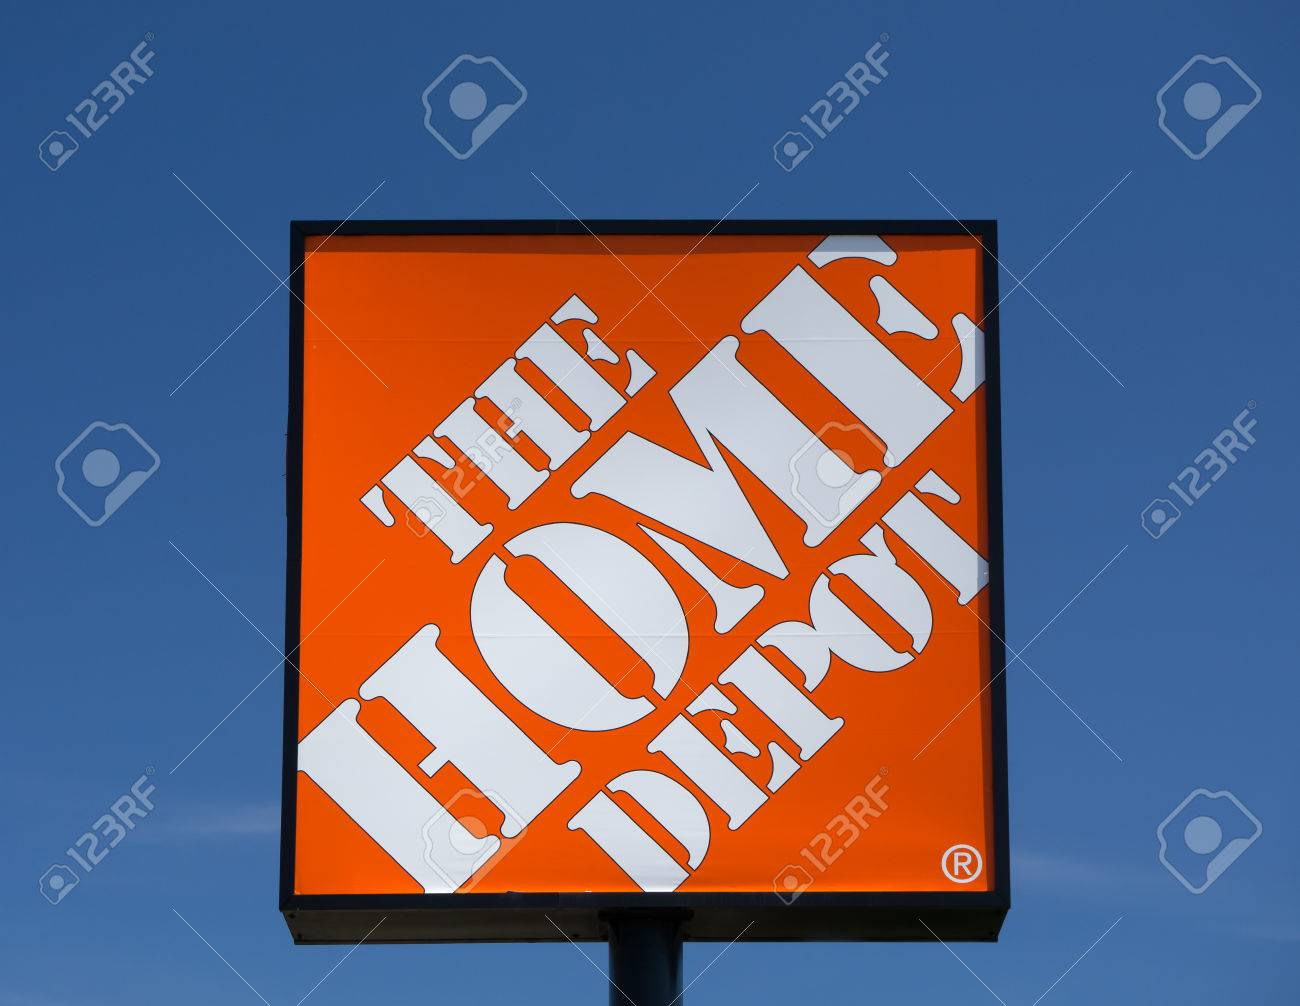 Bloomington Mn Usa August 12 2015 The Home Depot Exterior Stock Photo Picture And Royalty Free Image Image 44159653